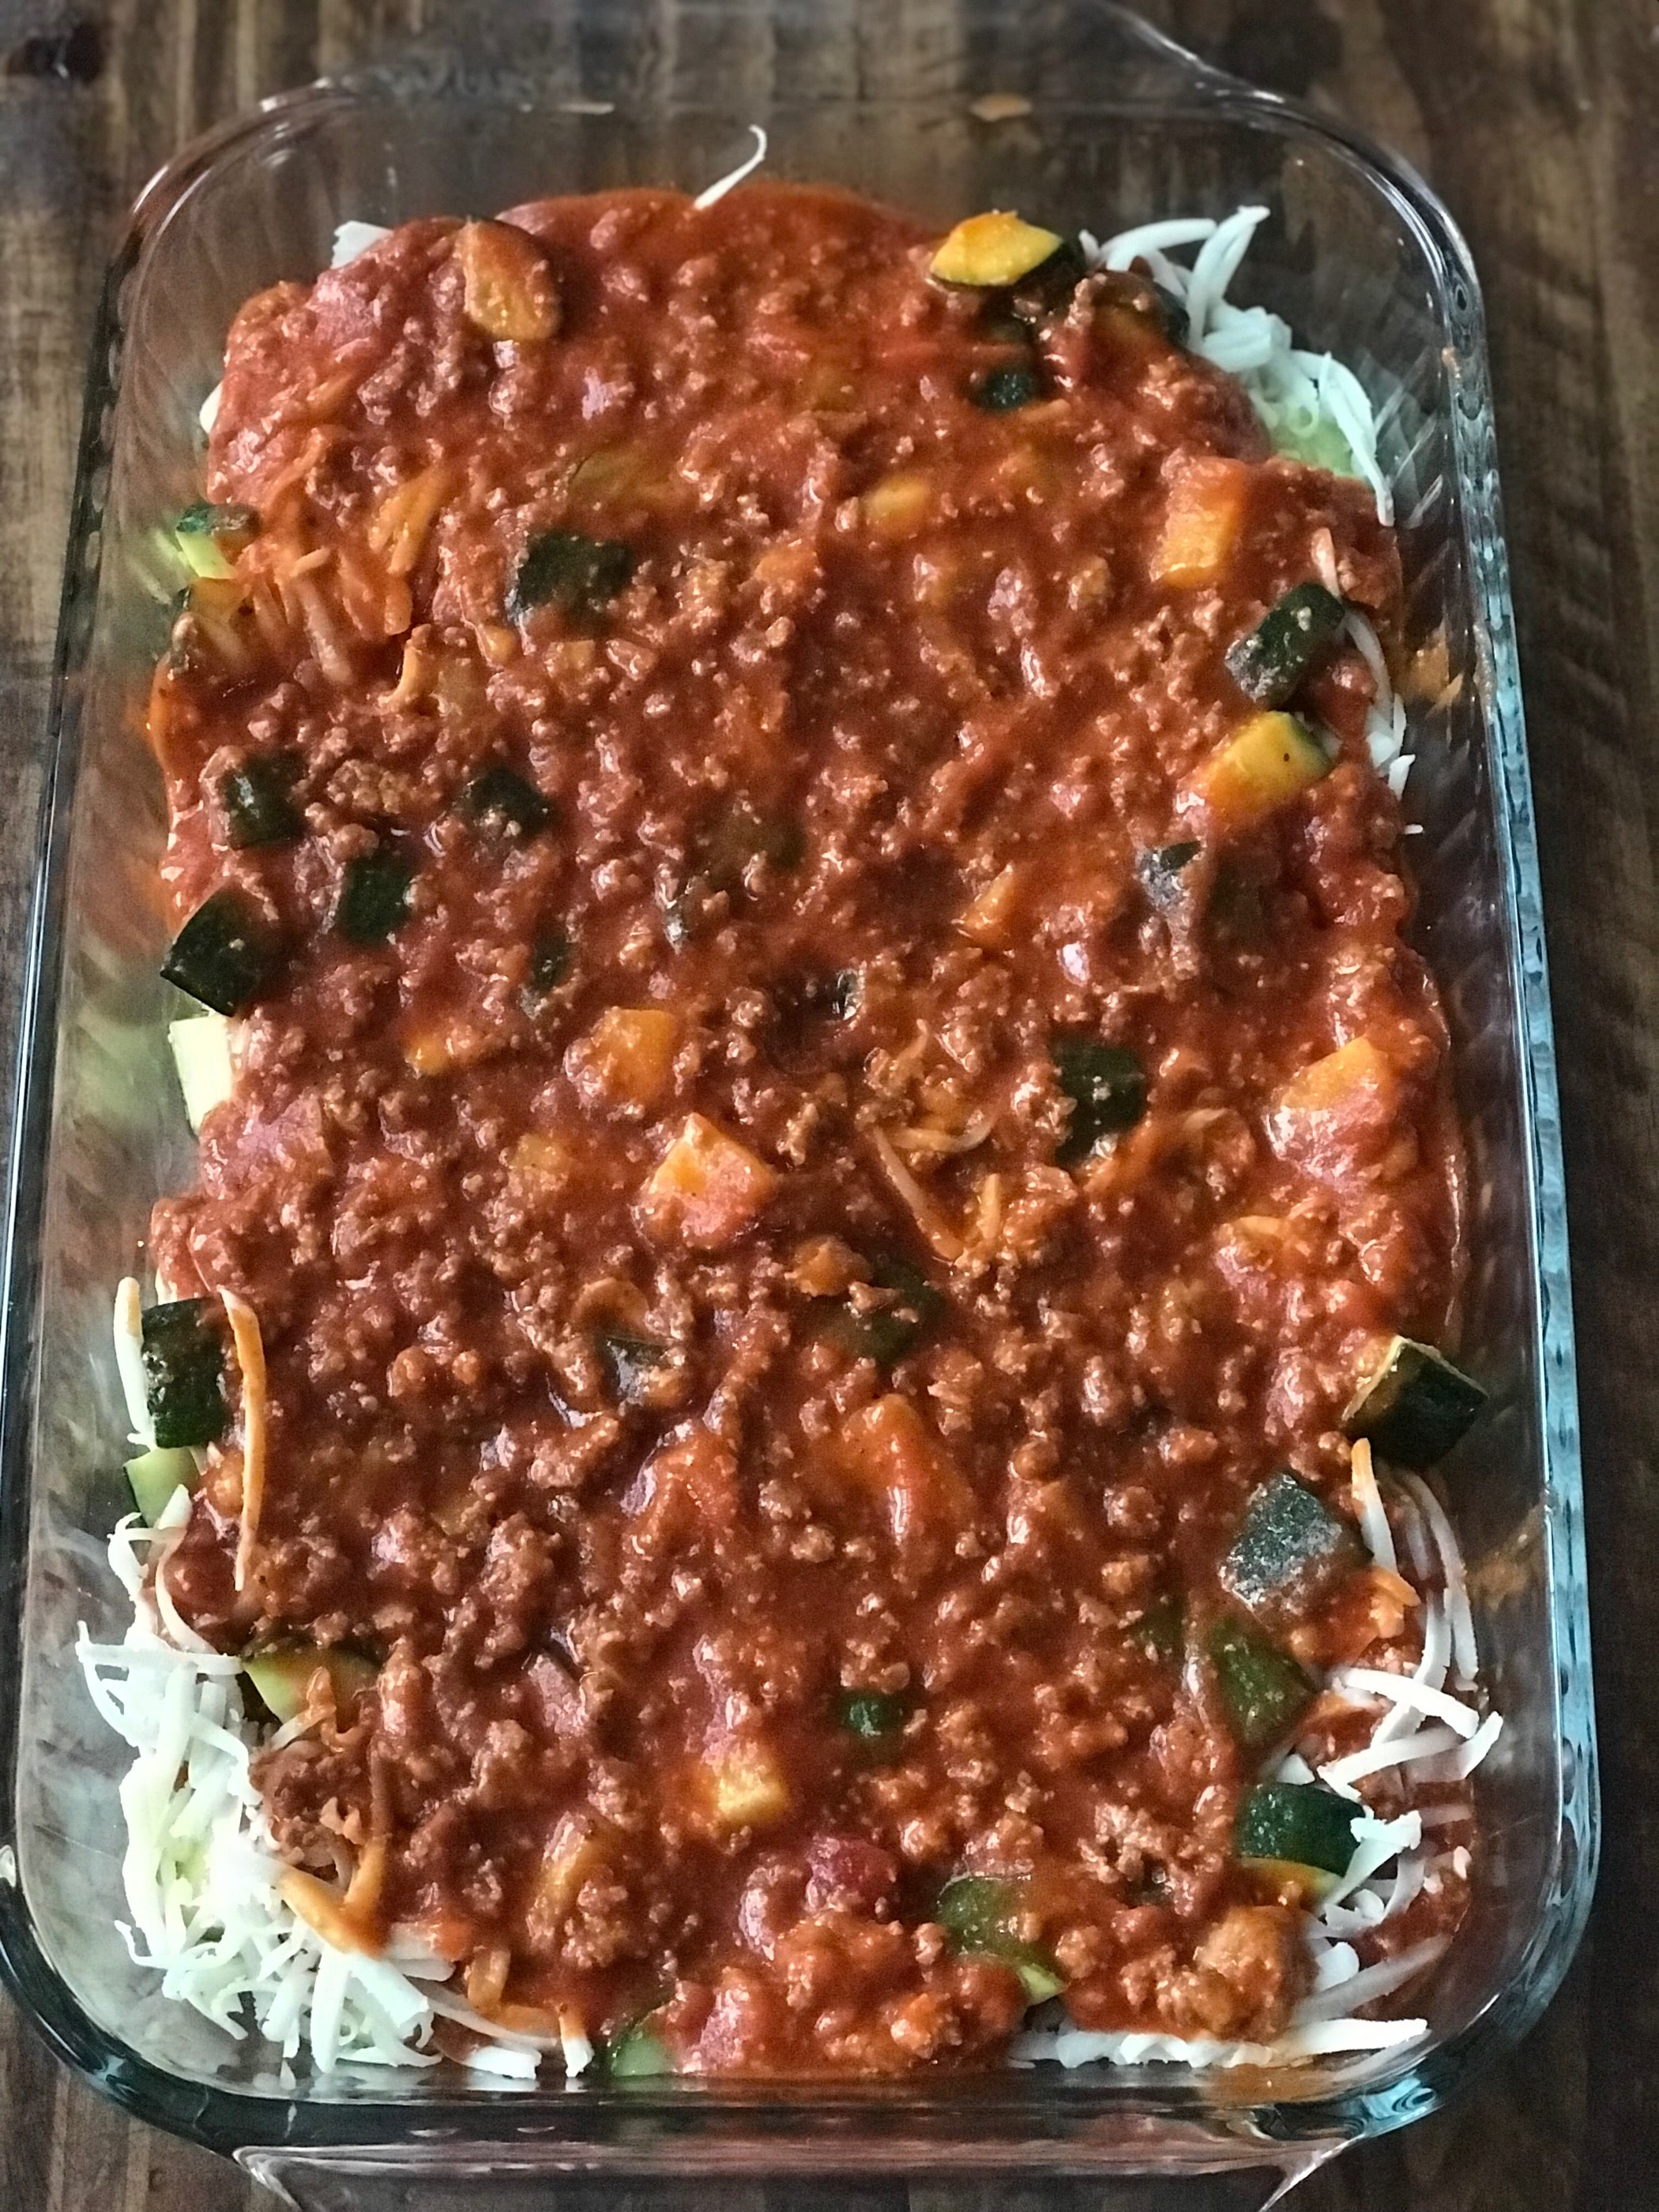 zucchini casserole with marinara